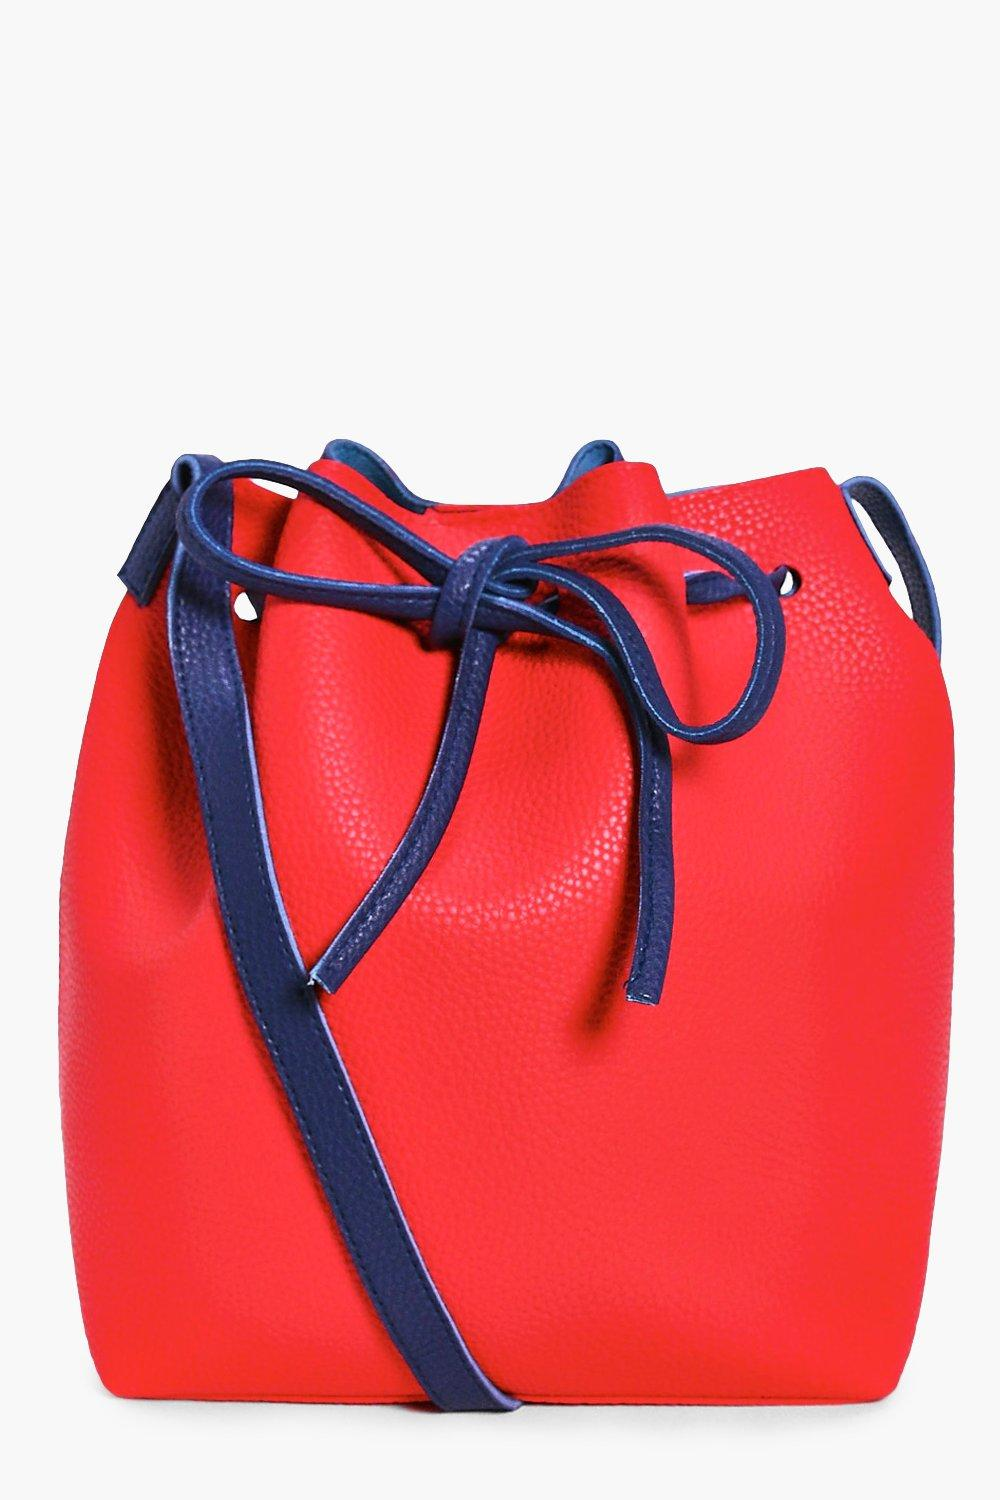 Colourblock Tie Duffle Bag - red - Annabelle Colou